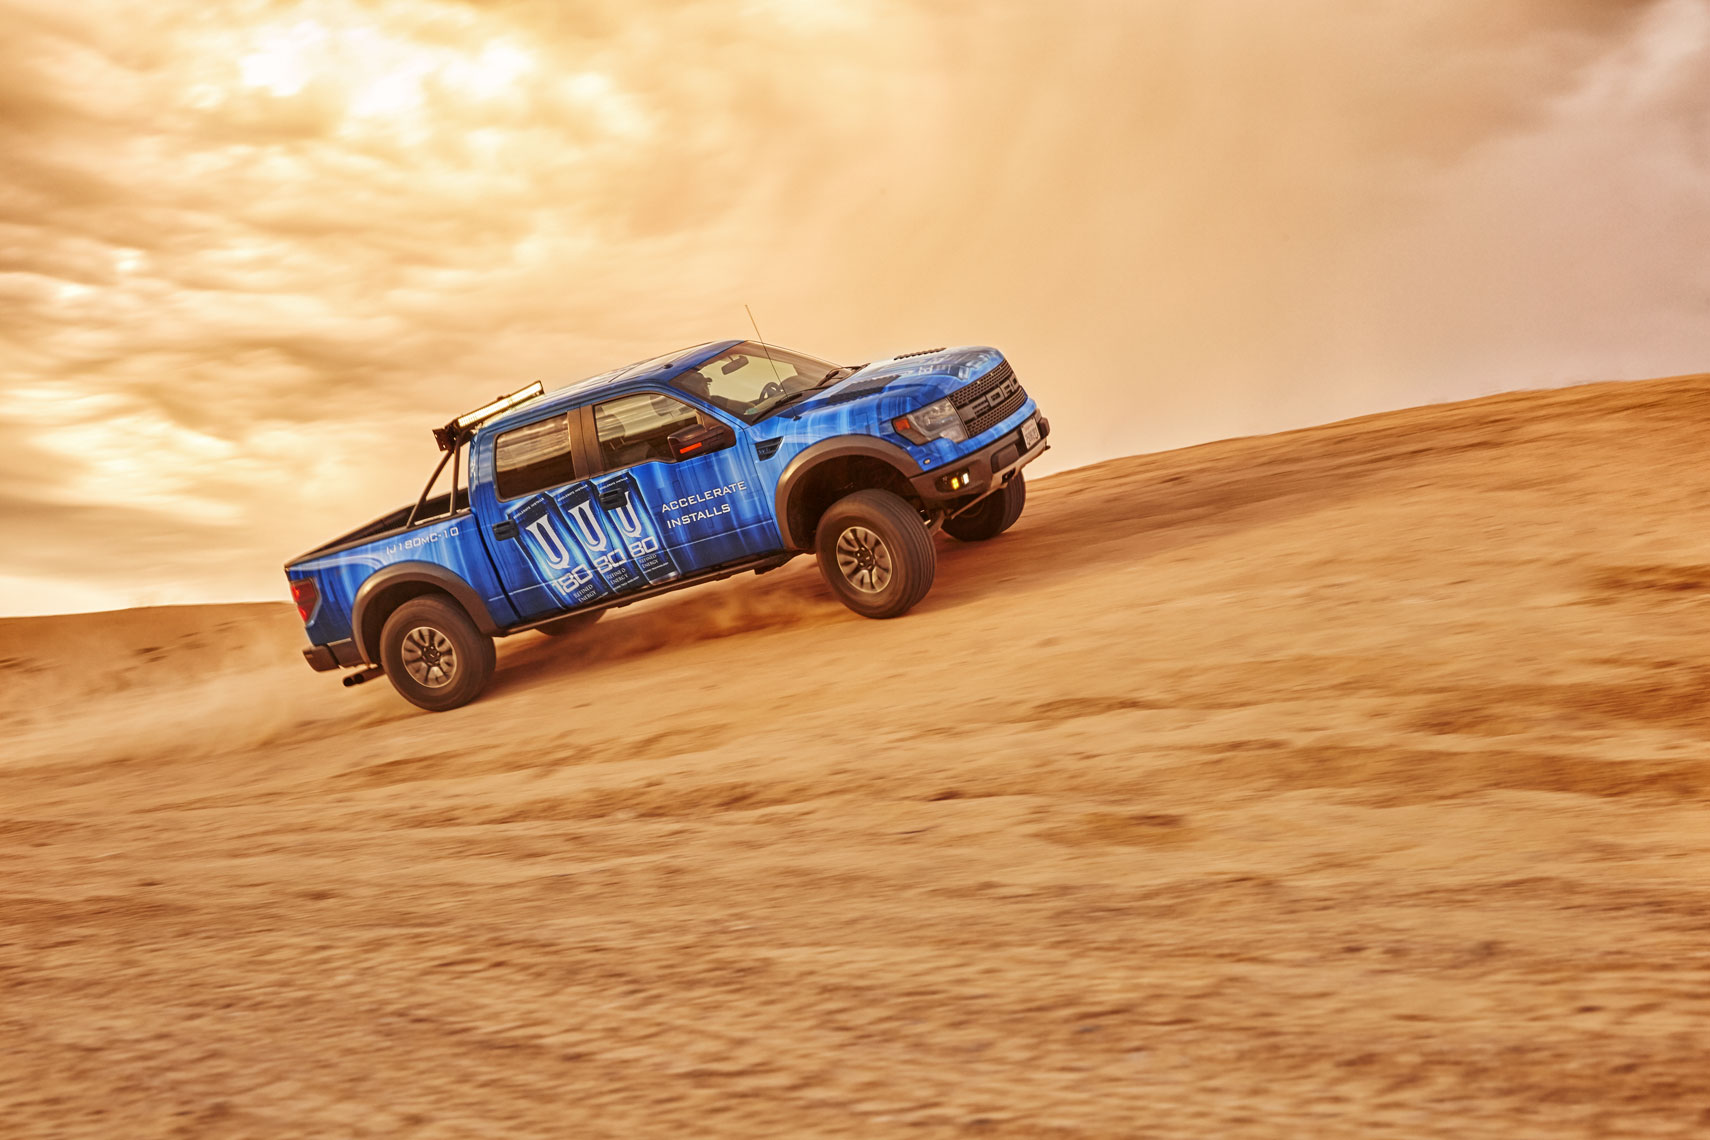 Blue Ford Truck/Las Vegas Dunes/3M Auto Wrap/location photography